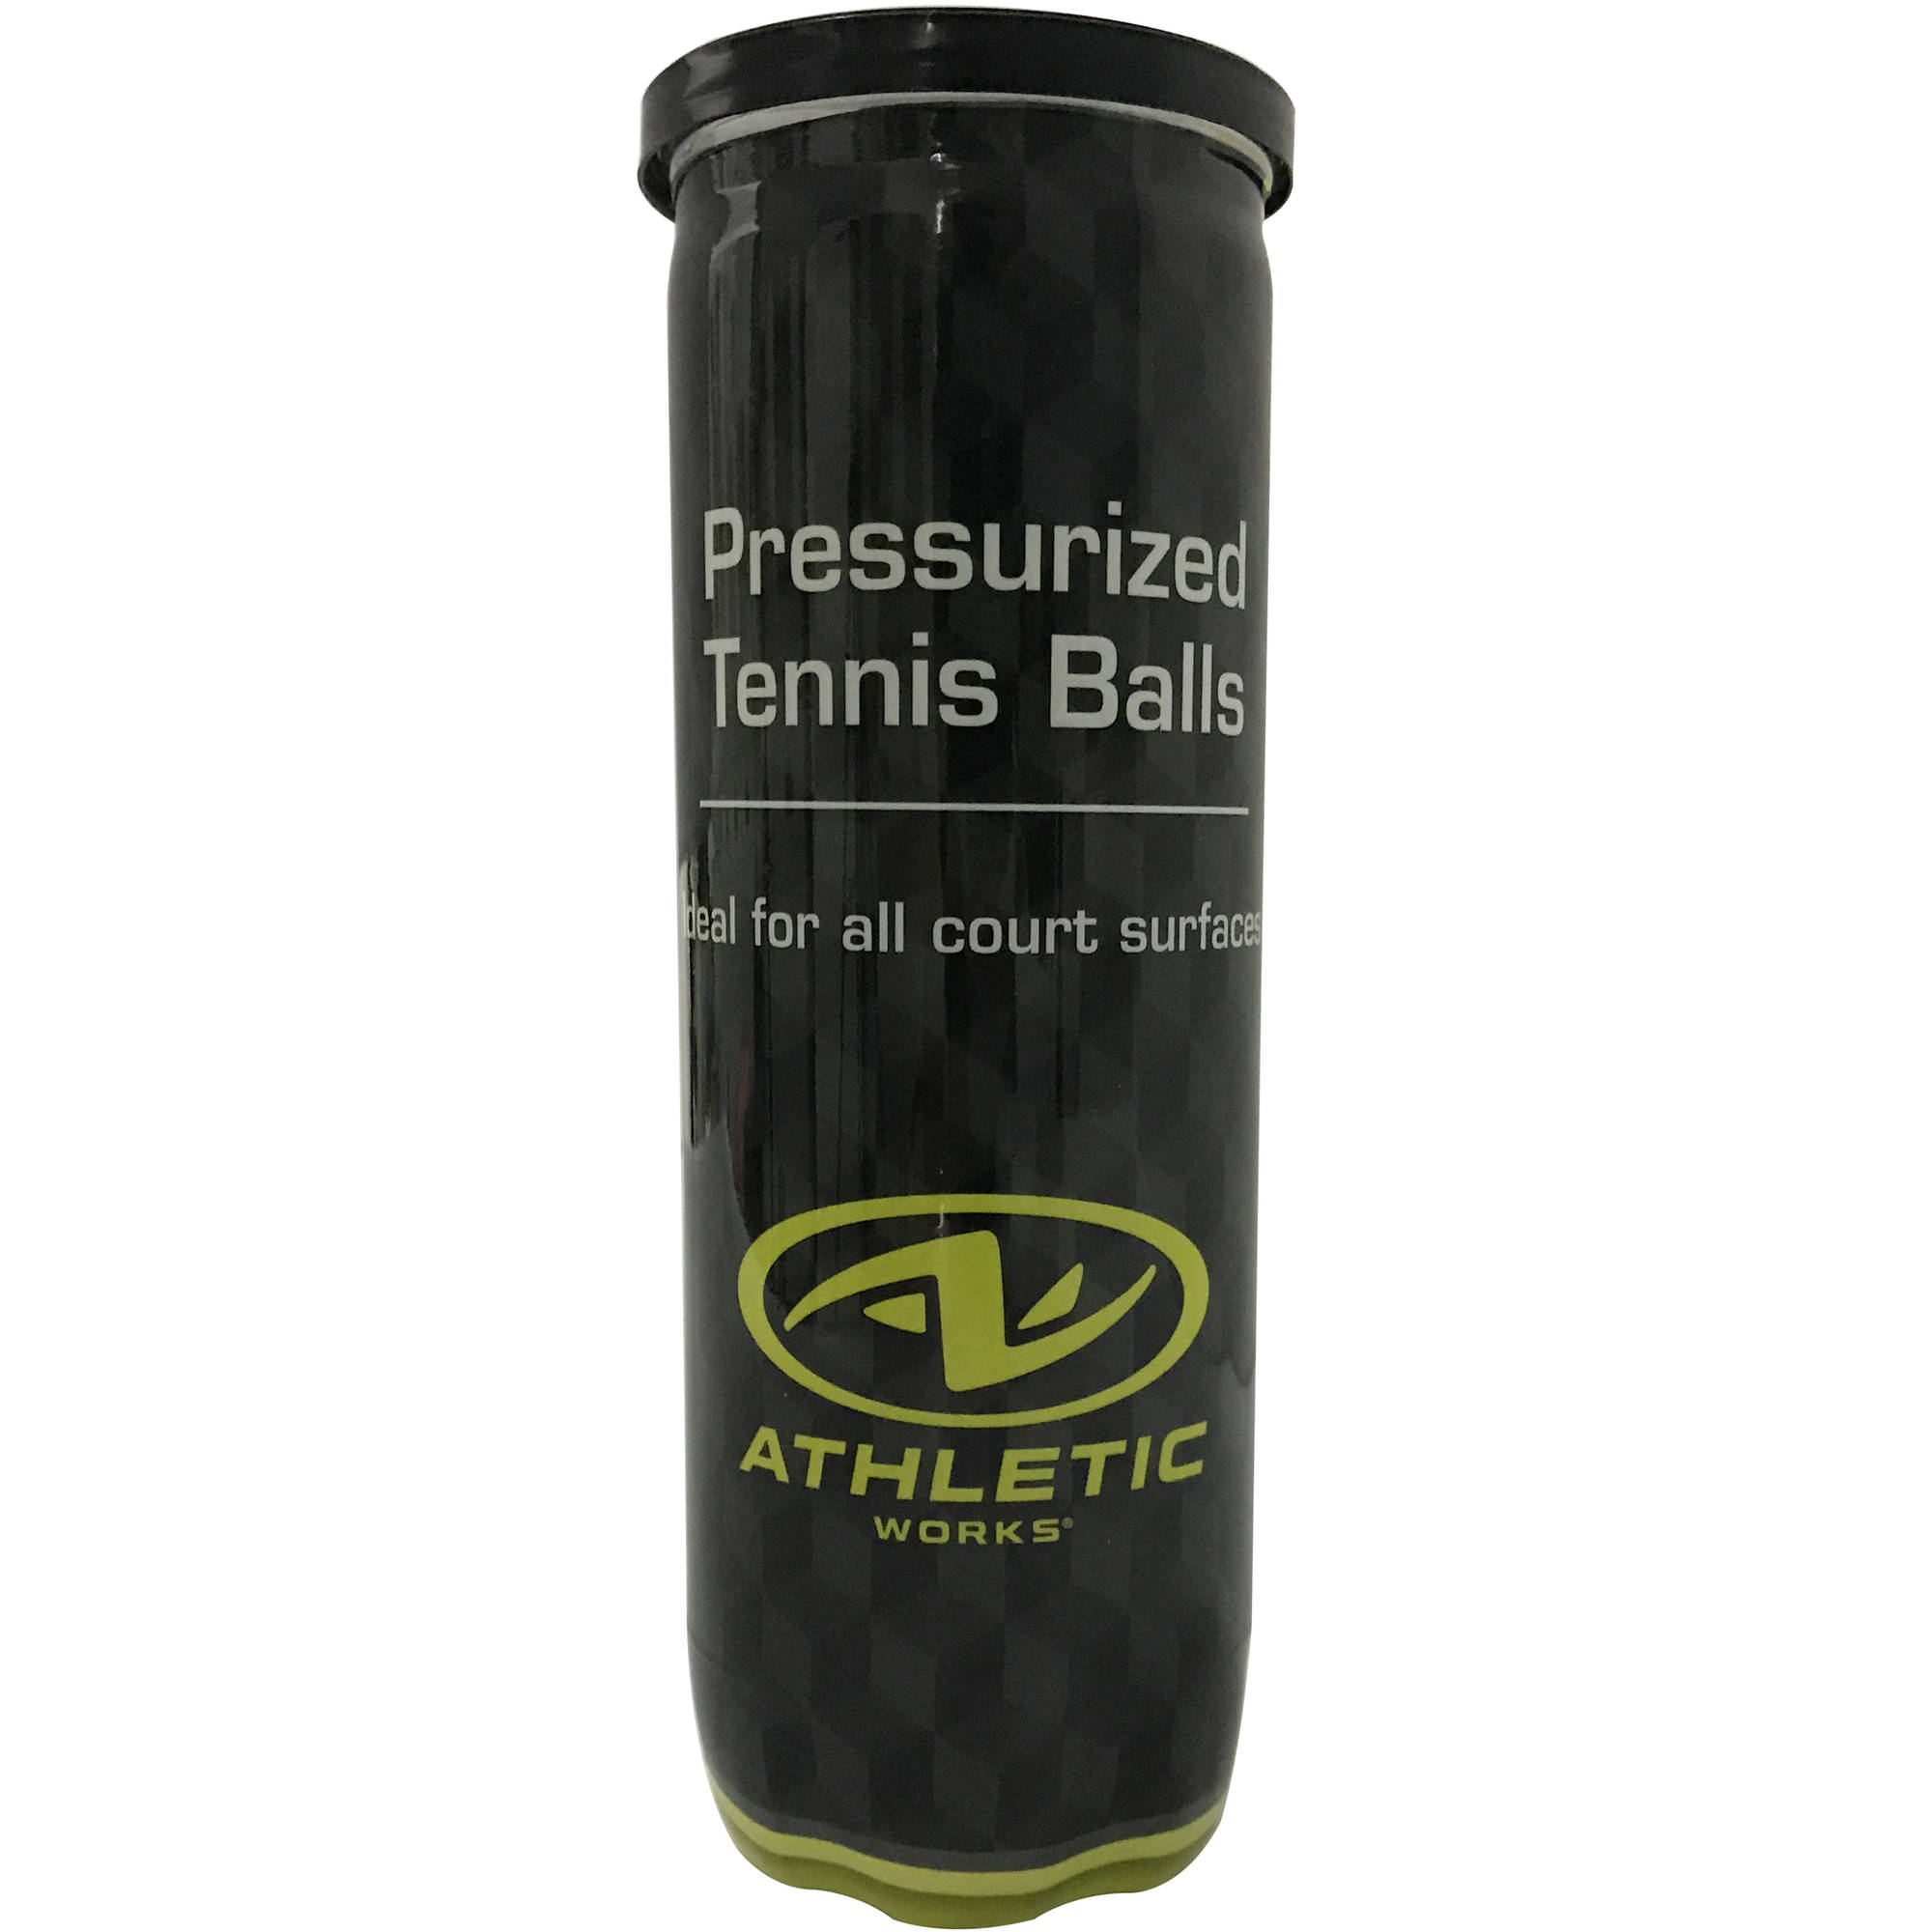 Athletic Works Pressurized Tennis Balls, 1 Can, 3 Balls